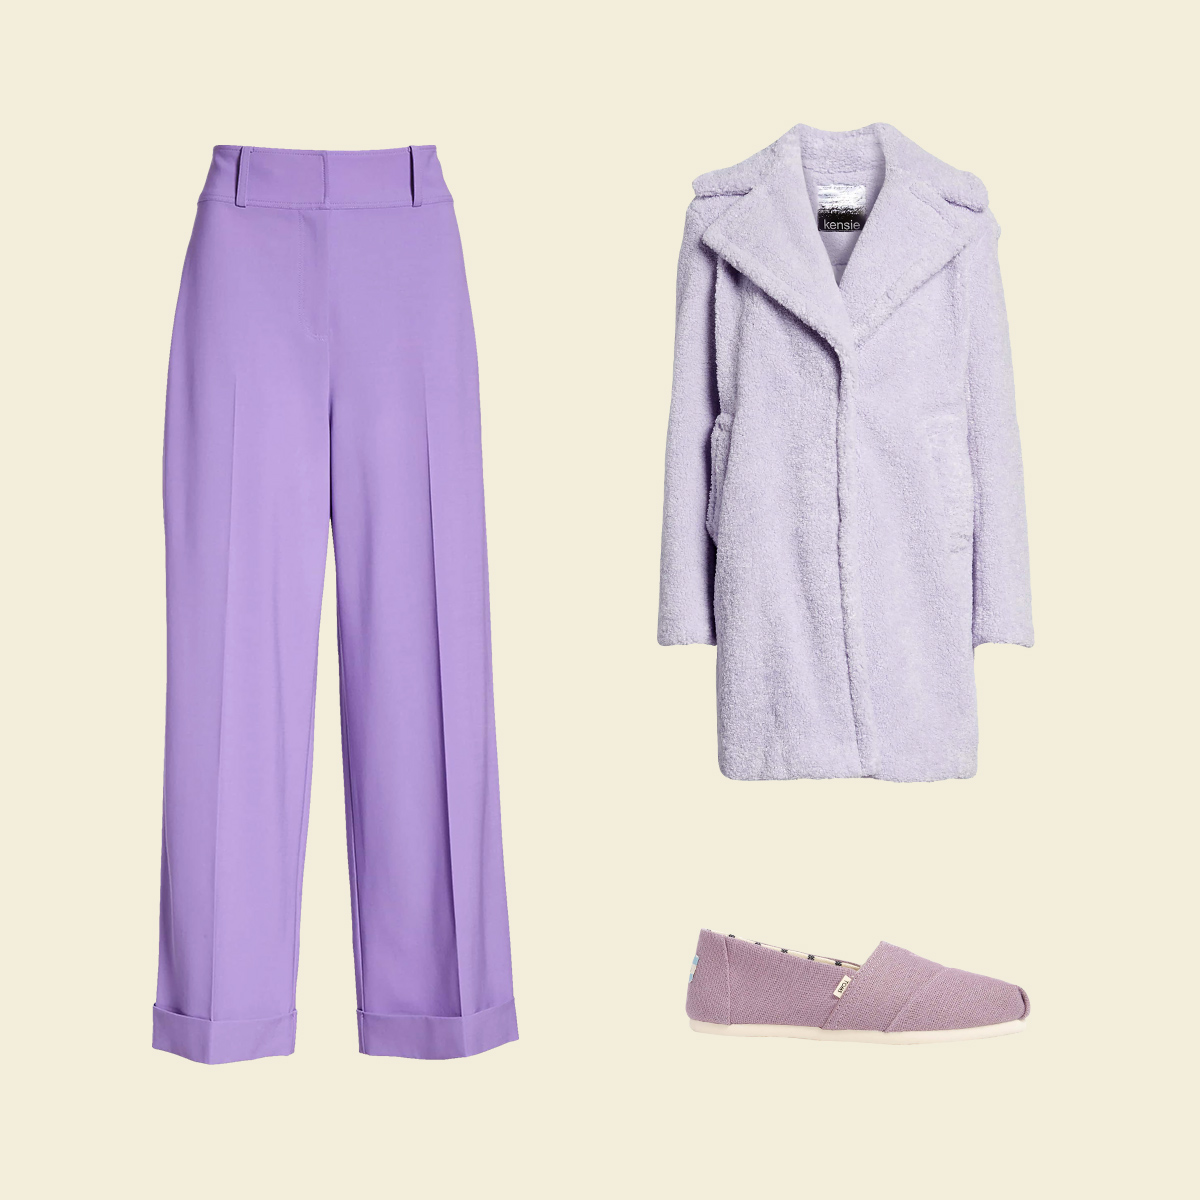 Three pastel women's garments in lavender.